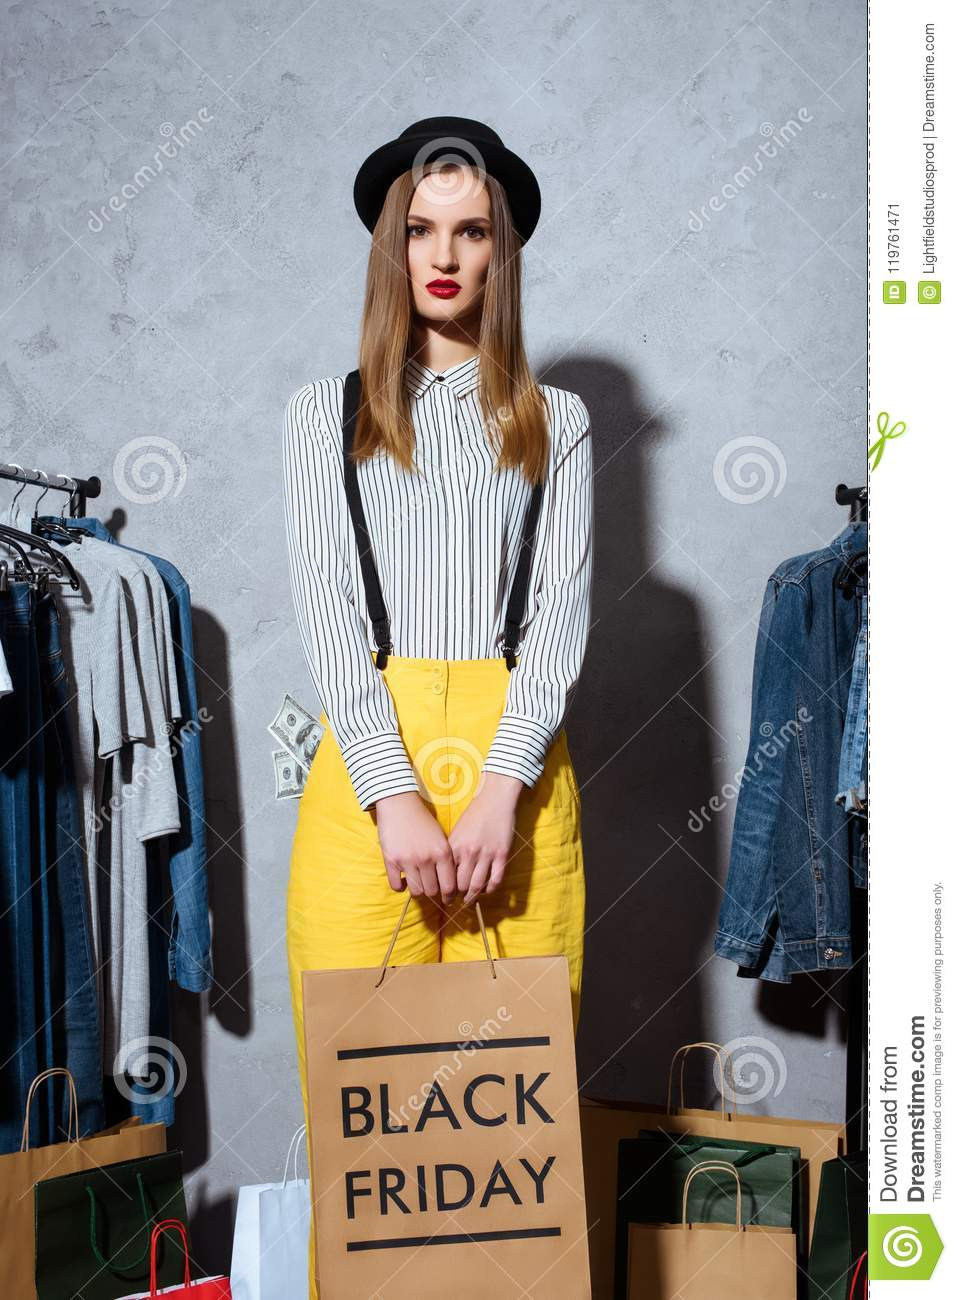 trendy girl with shopping bags and clothes around, black